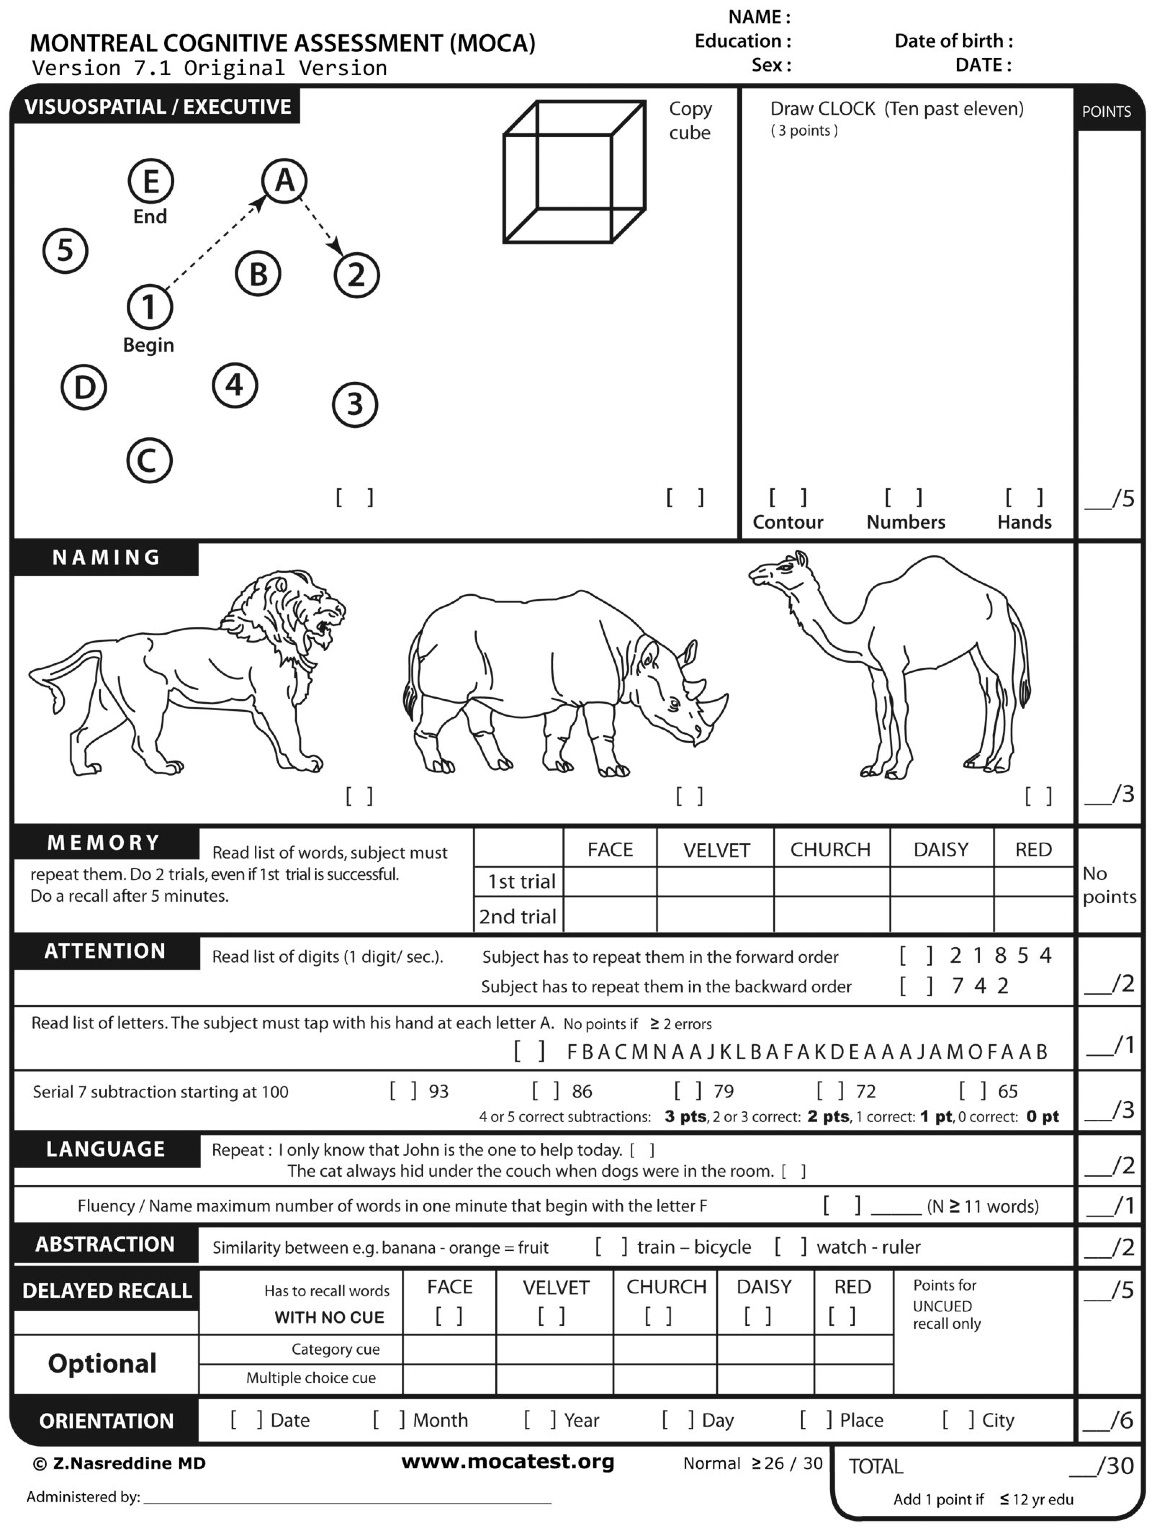 The Montreal Cognitive Assessment Moca